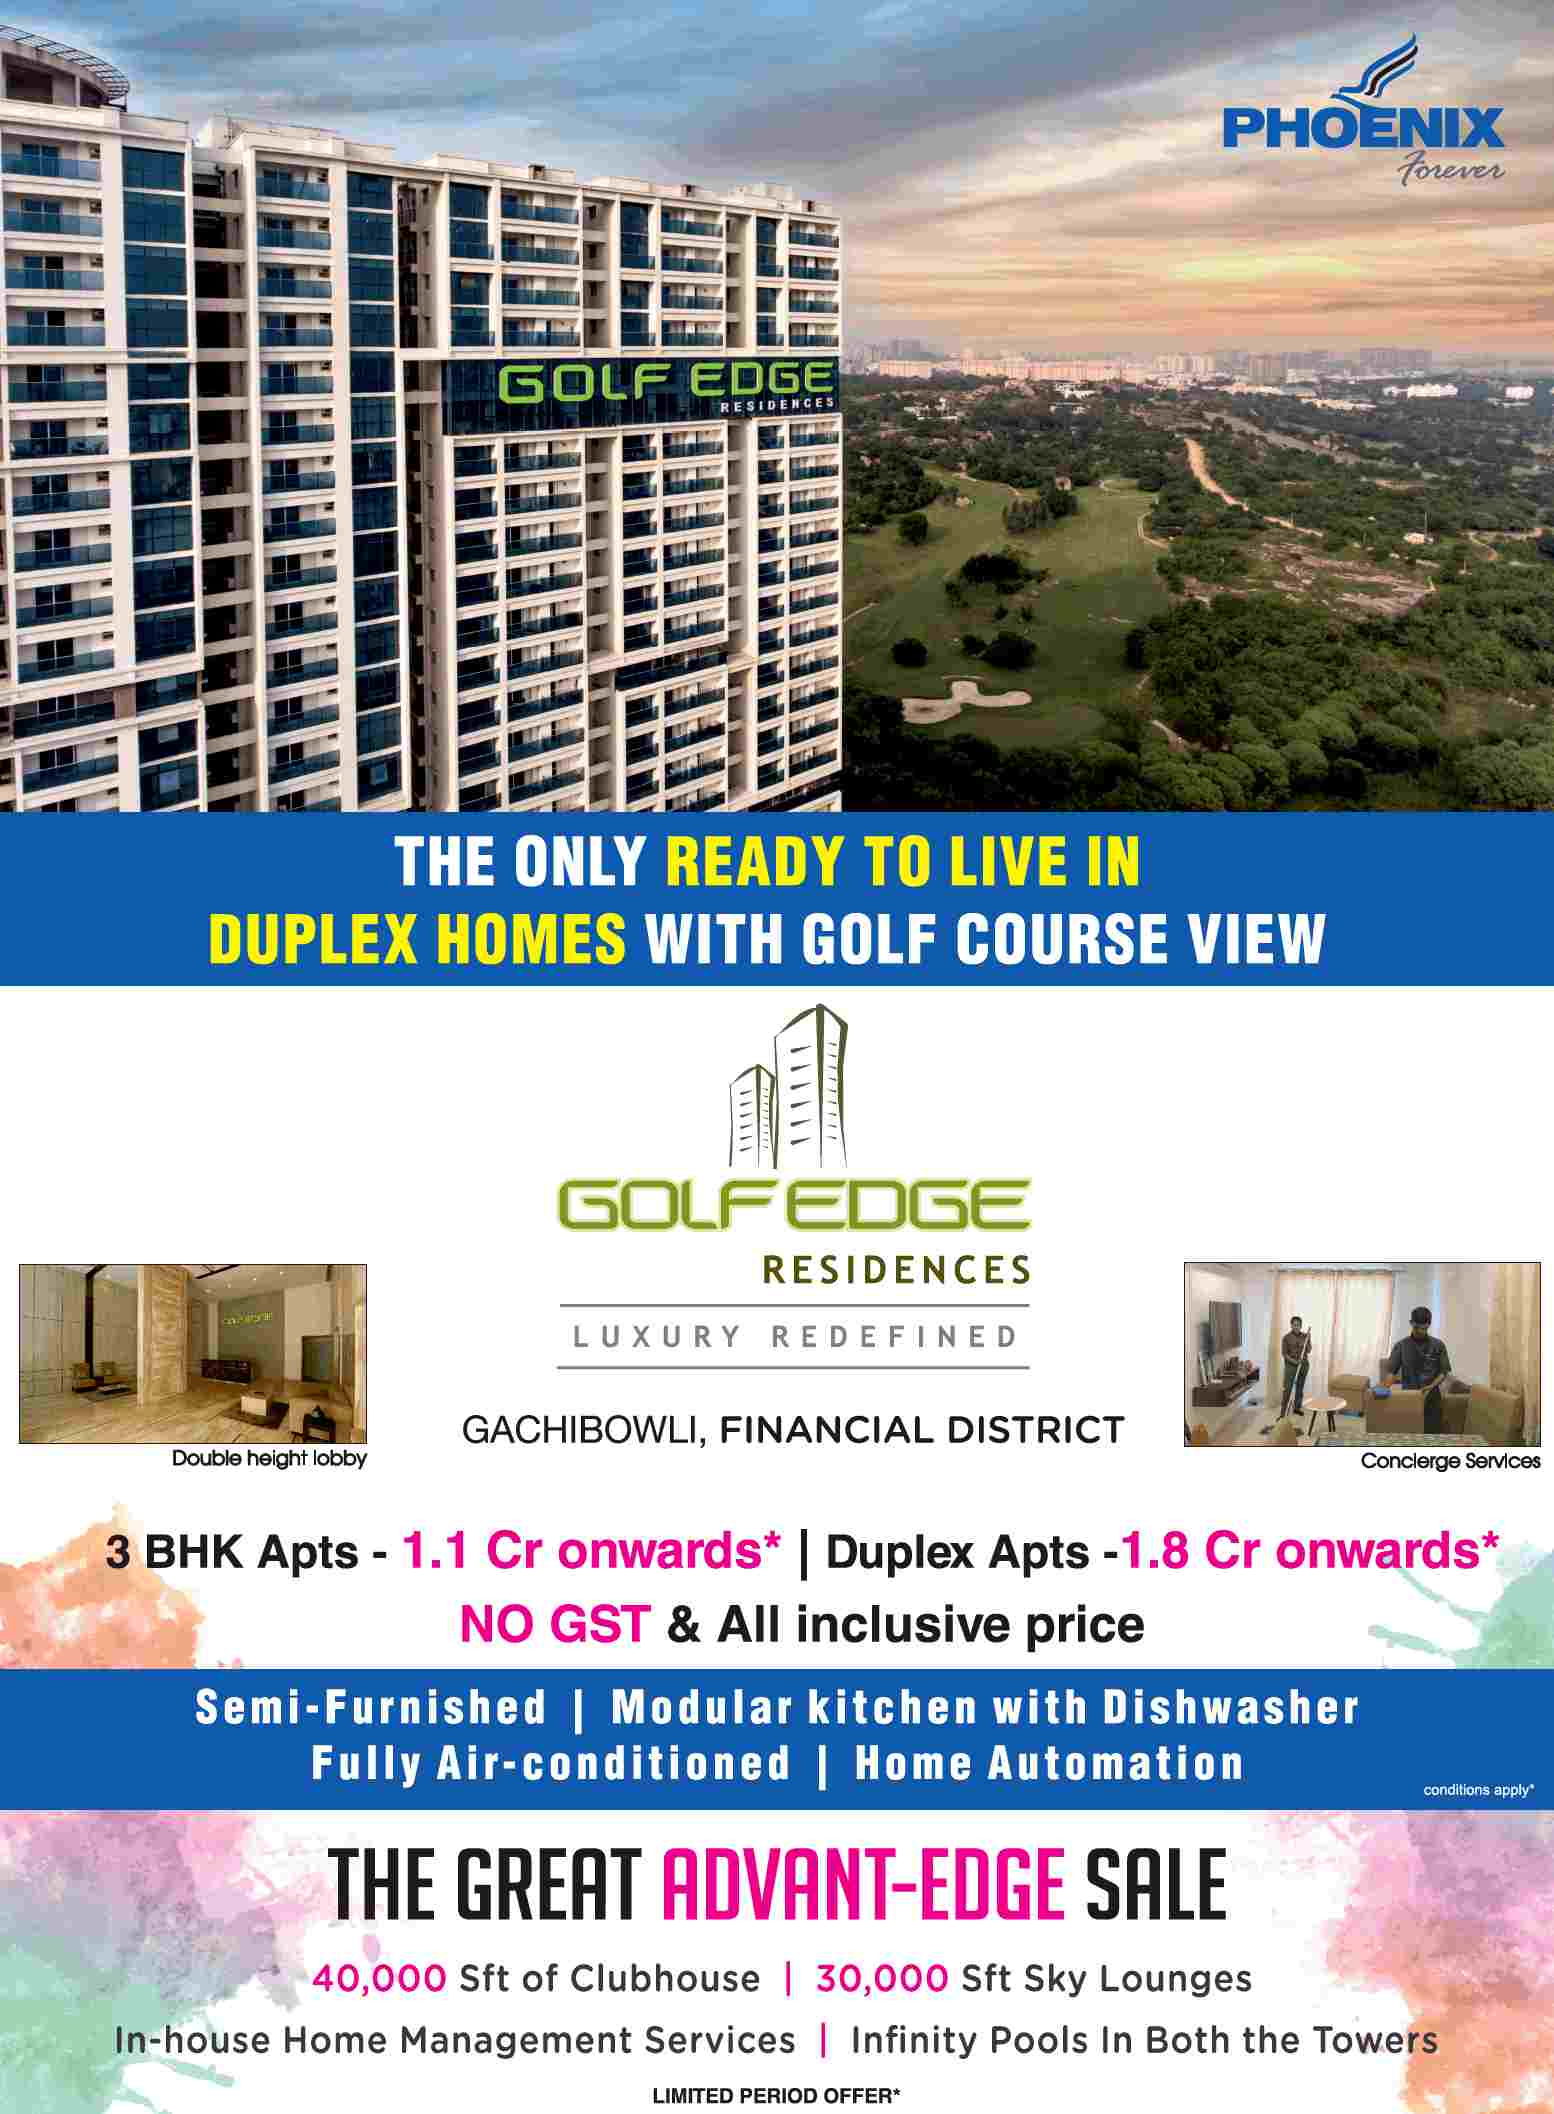 Live in the only ready to live duplex homes with golf course